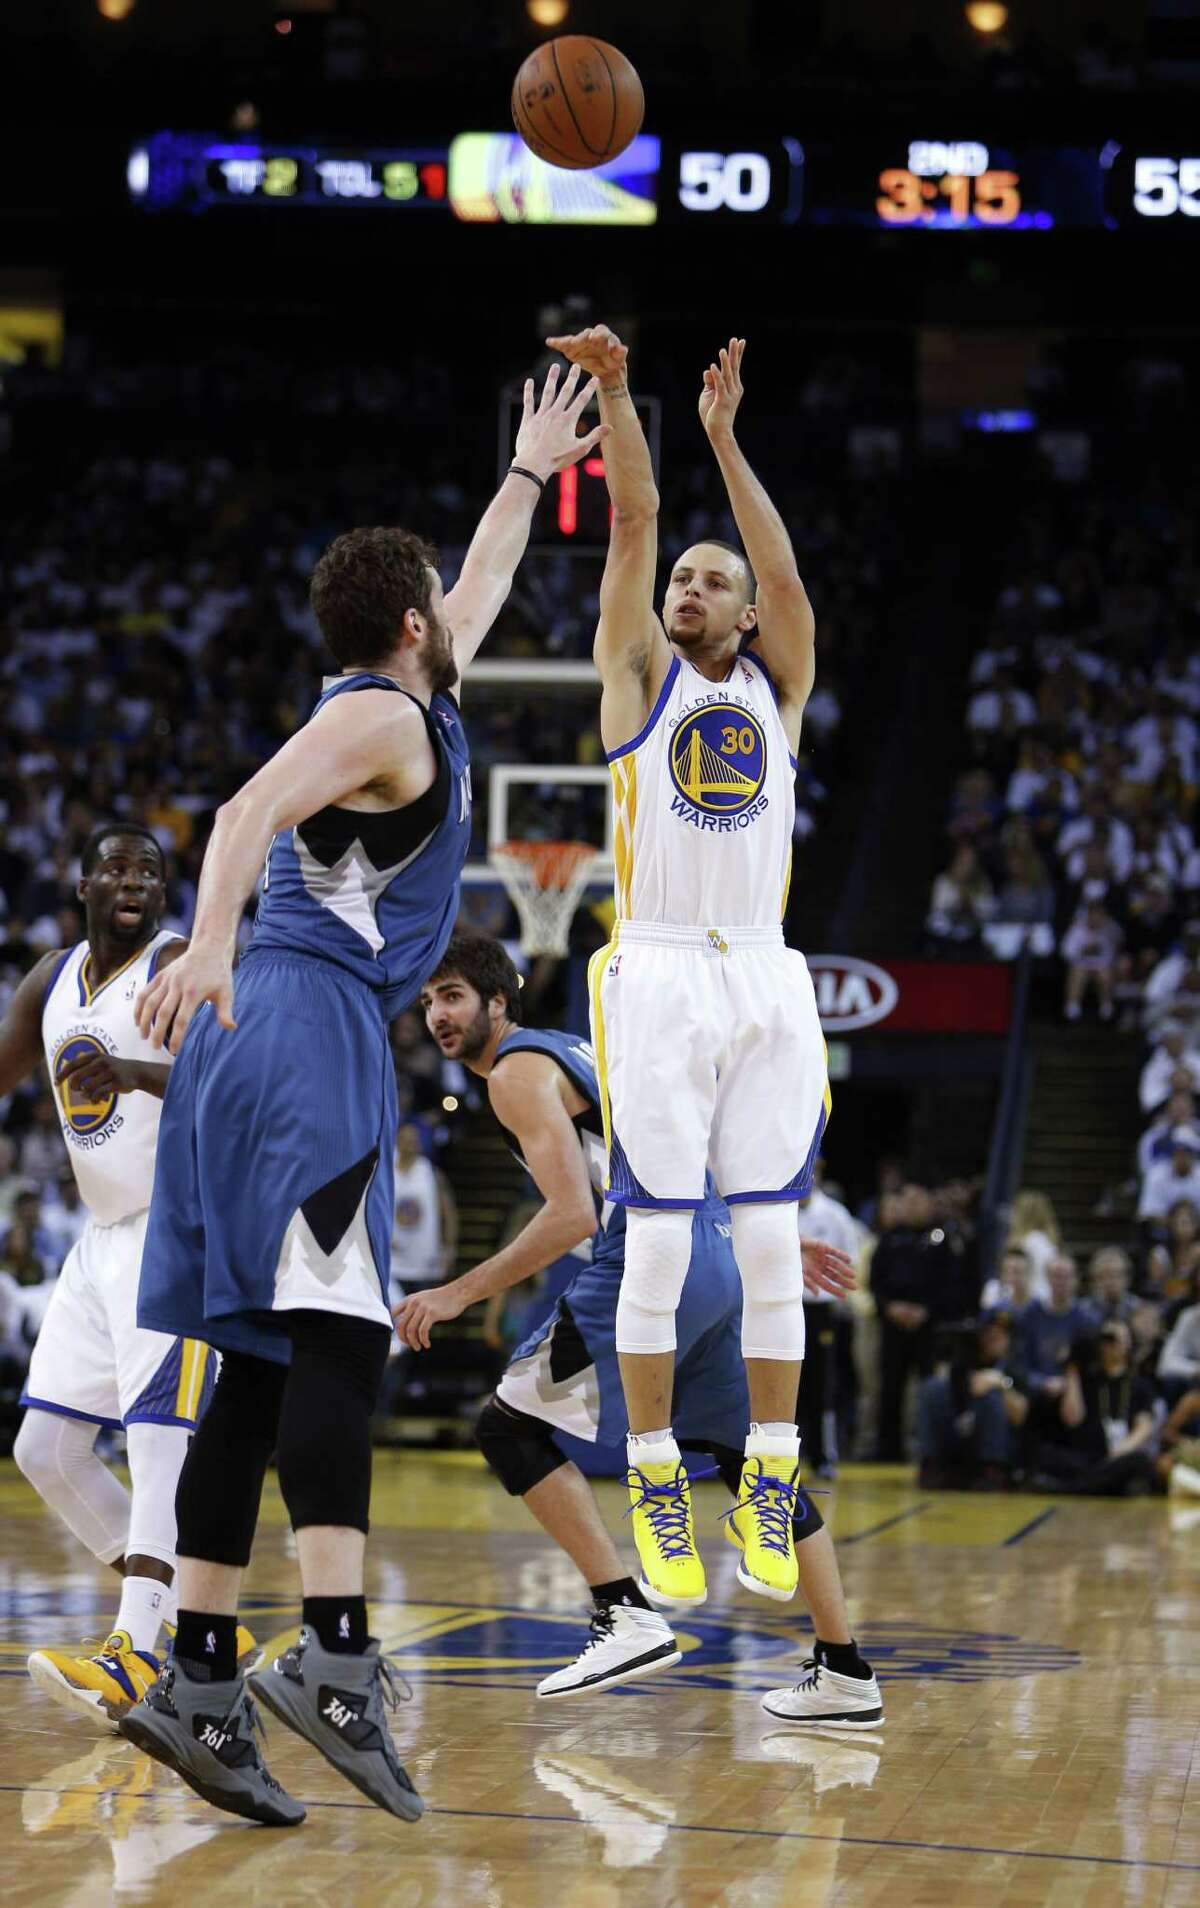 """Stephen Curry (30) joins Klay Thompson to form a potent backcourt for the Warriors. Curry """"has got to among the top 15 players in the world ..."""" ESPN analyst Jeff Van Gundy said. """"And you say to yourself, 'Who guards like Klay Thompson?' I think Klay Thompson's defensive versatility is a perfect fit for Curry."""""""